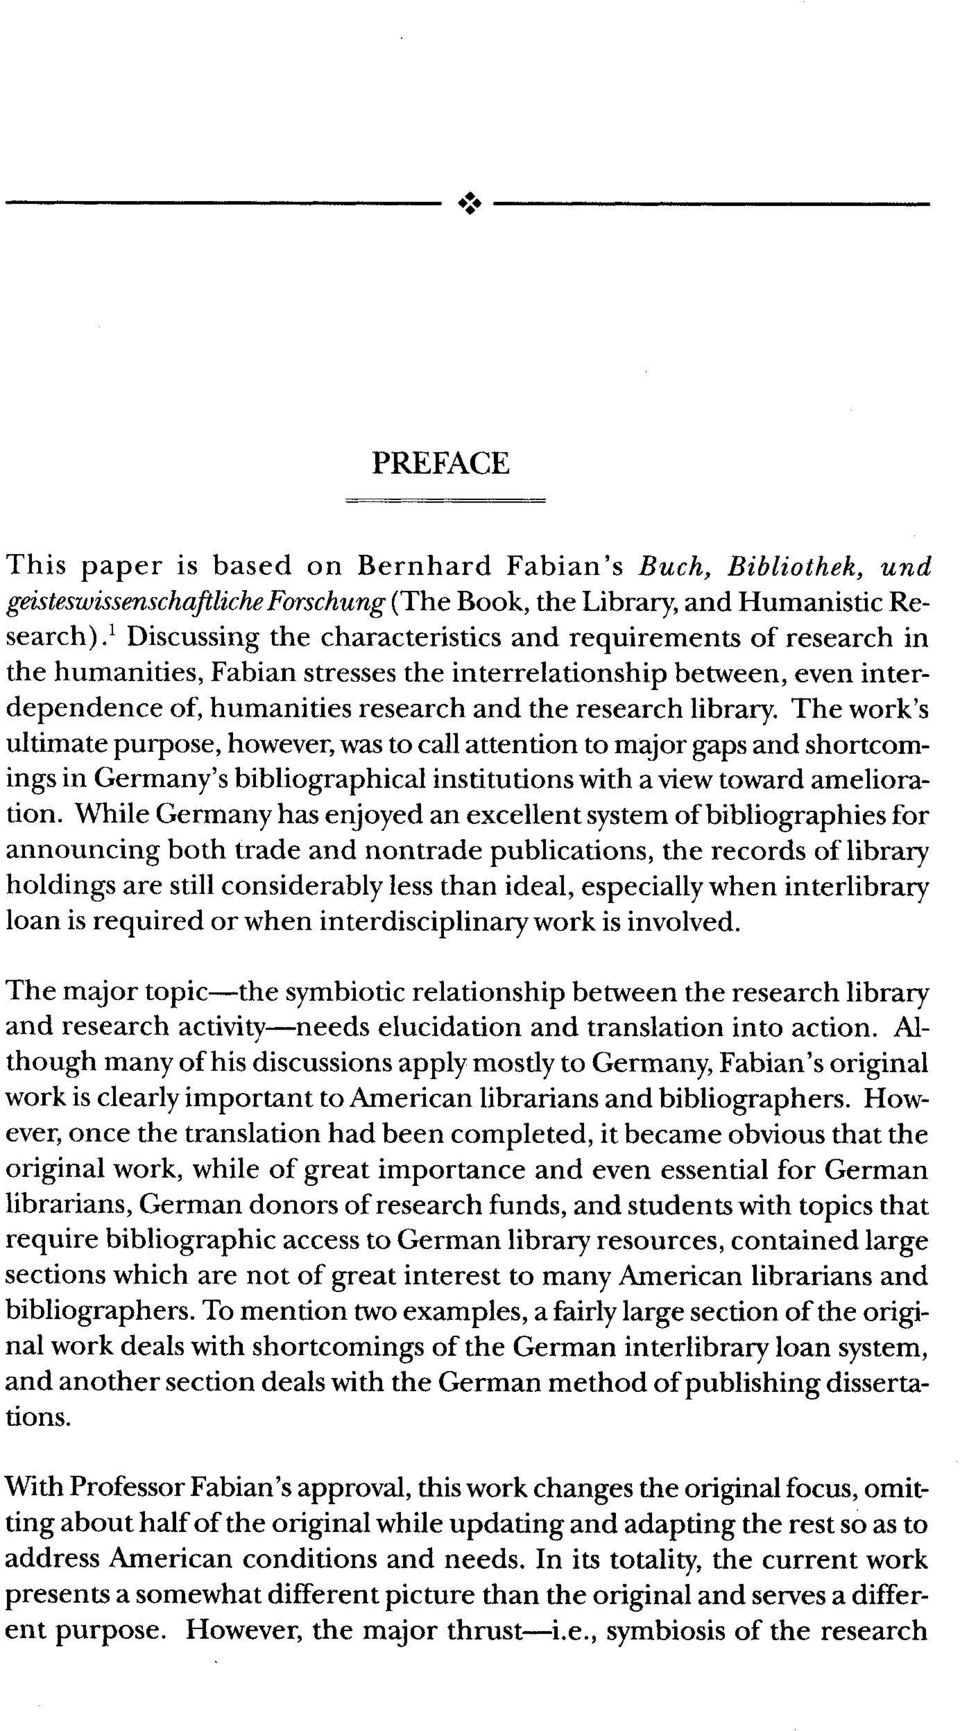 The work's ultimate purpose, however, was to call attention to major gaps and shortcomings in Germany's bibliographical institutions with a view toward amelioration.